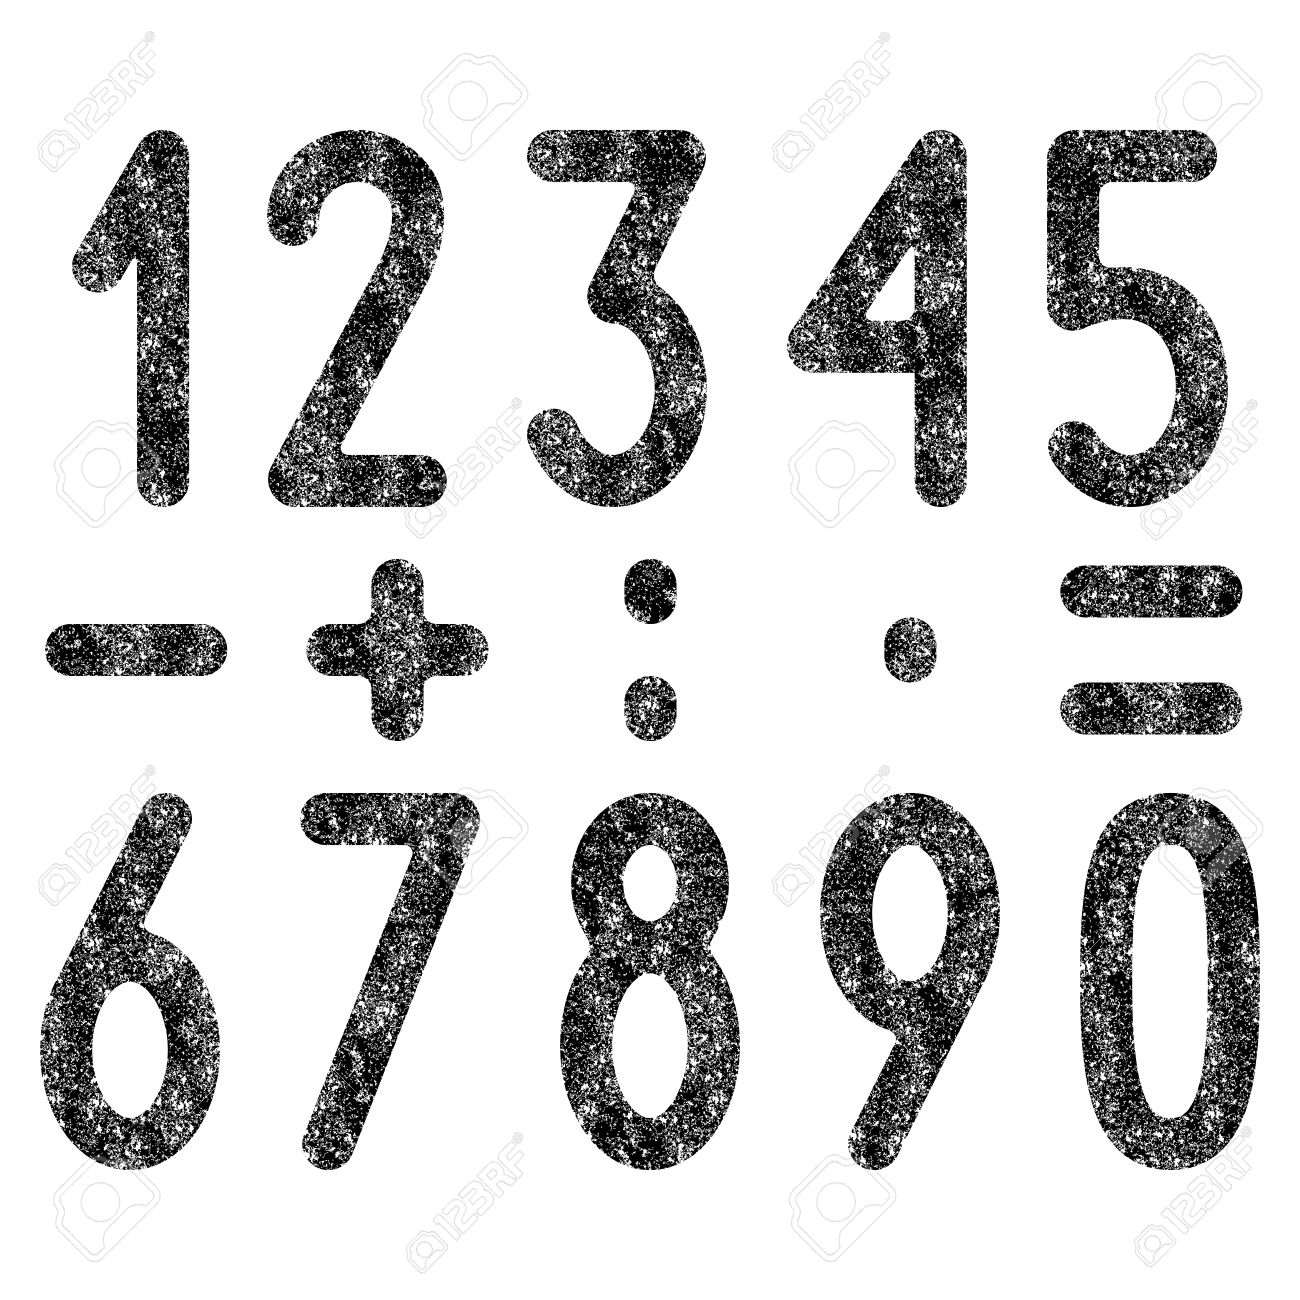 black colored shabby old numbers and mathematical symbols set